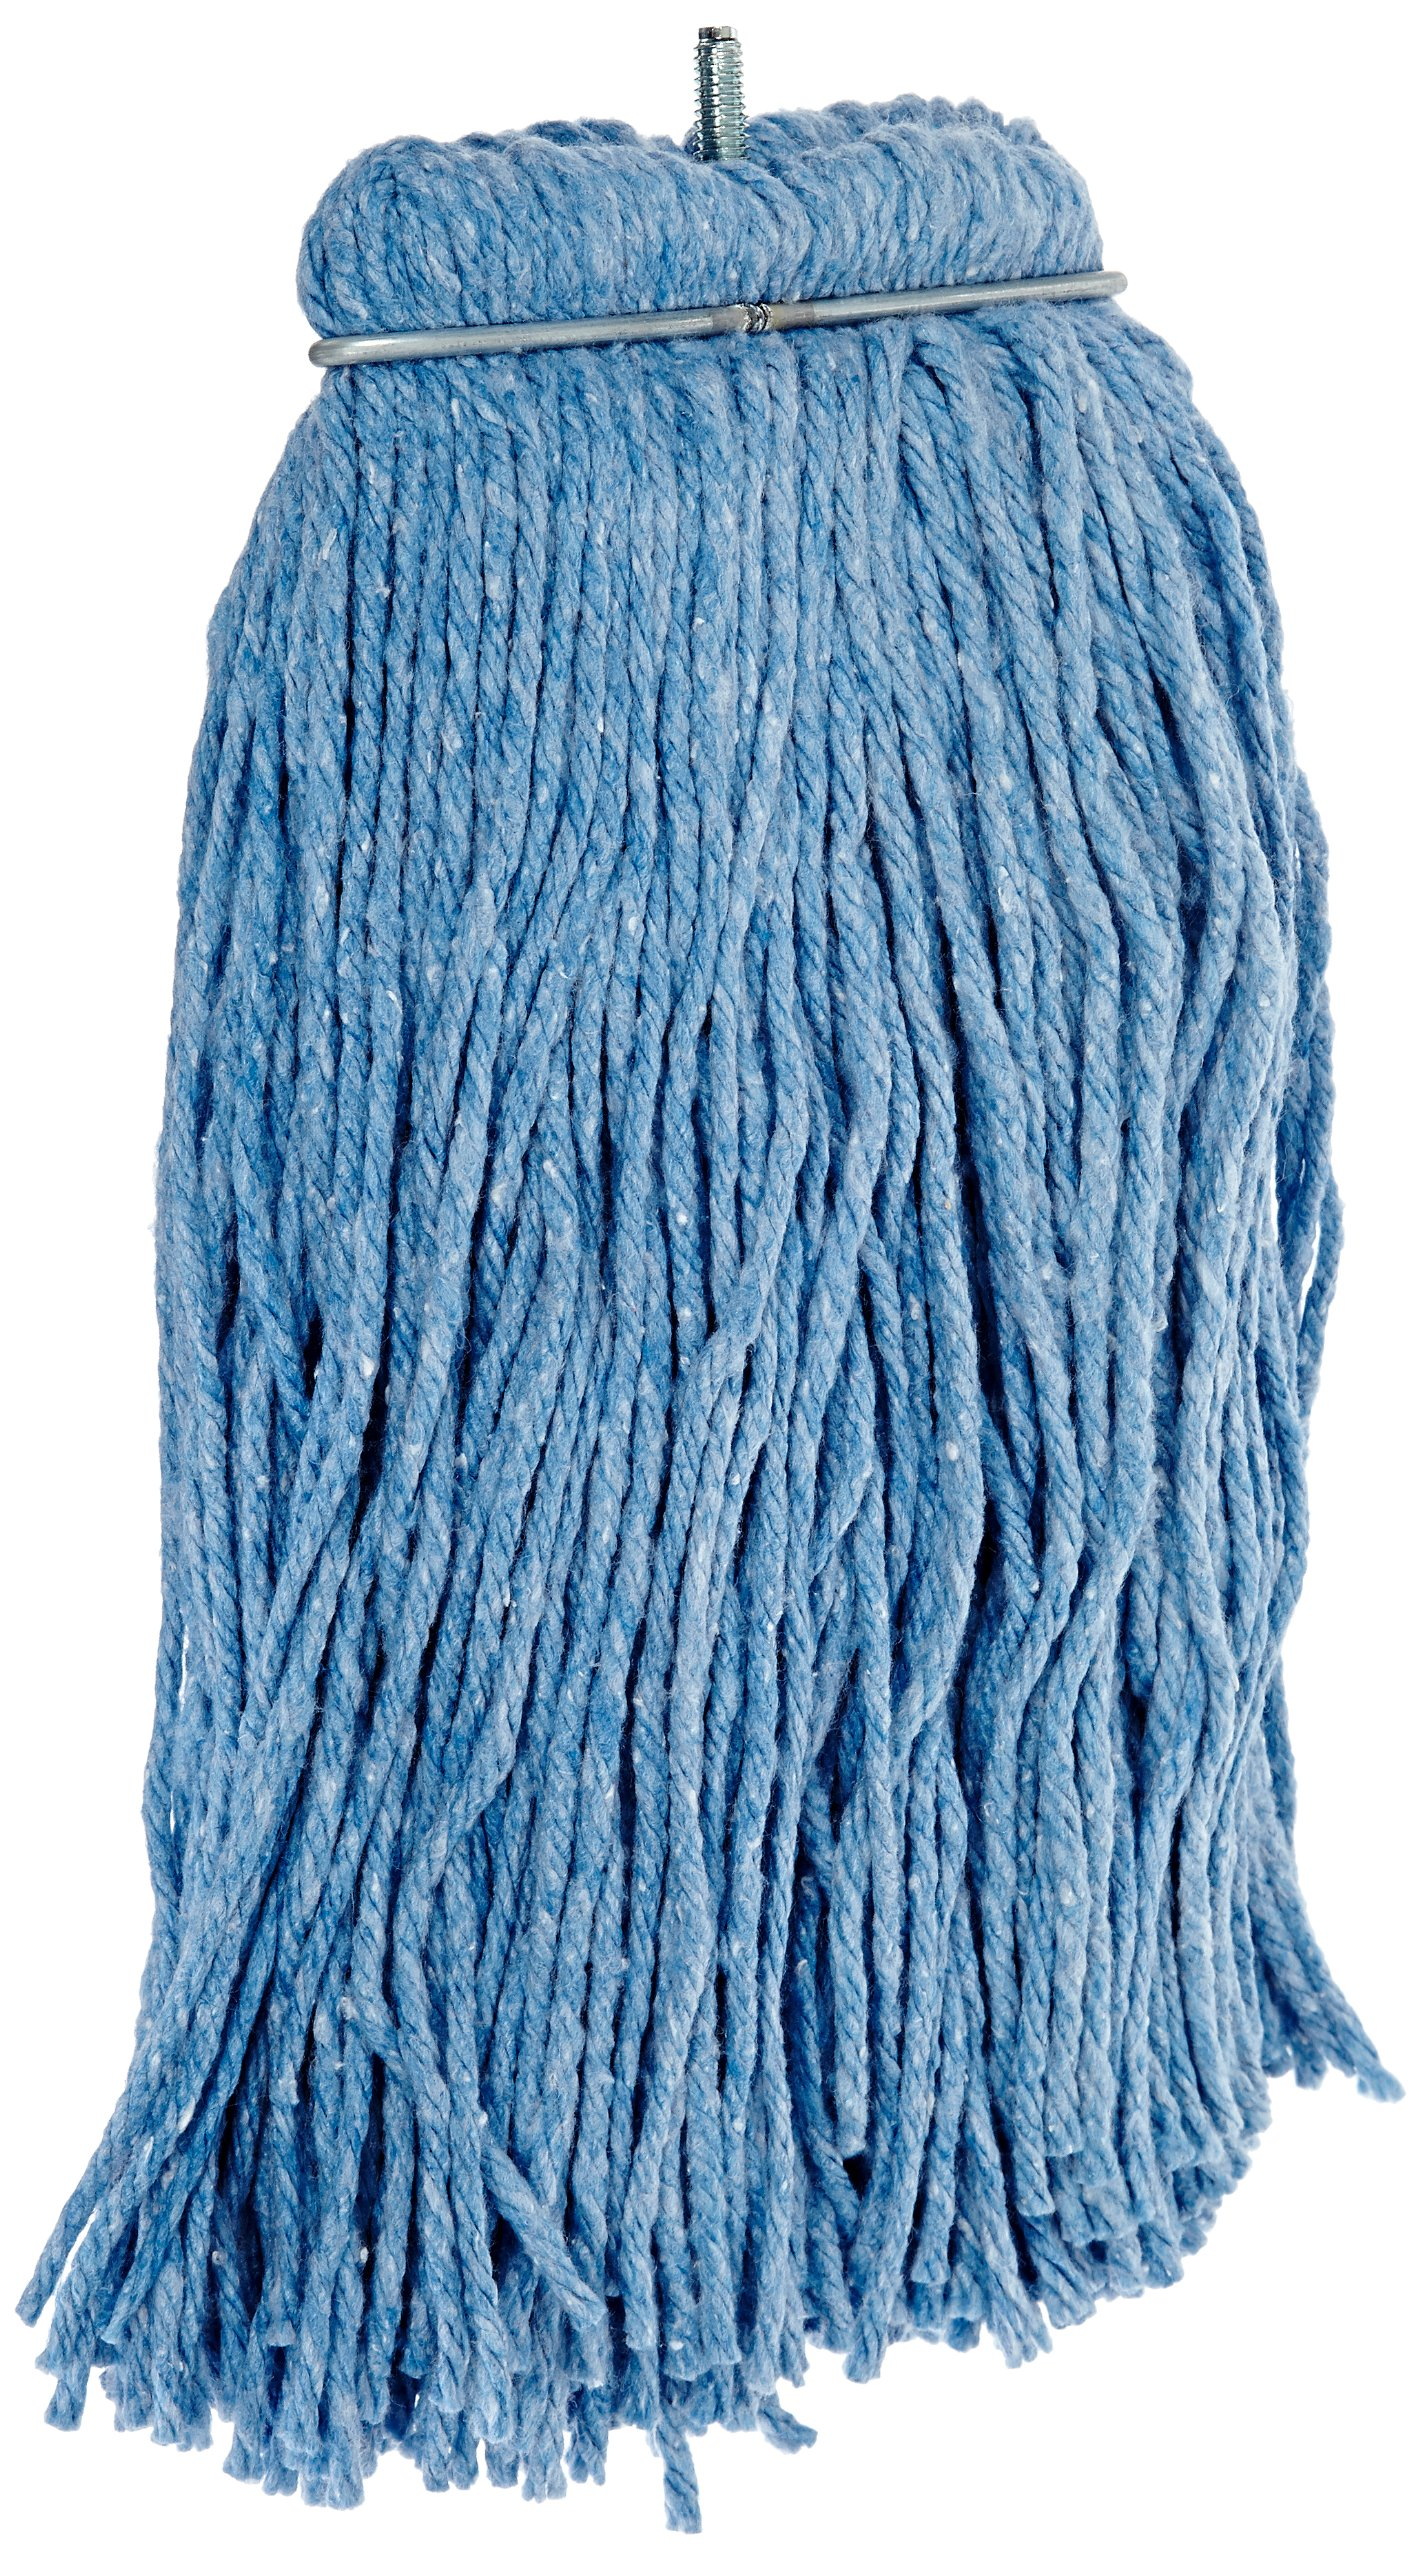 Impact 26116 Layflat Screw-Type Regular Cut-End Blend Wet Mop Head, 16 oz, Blue (Case of 12) by Impact Products